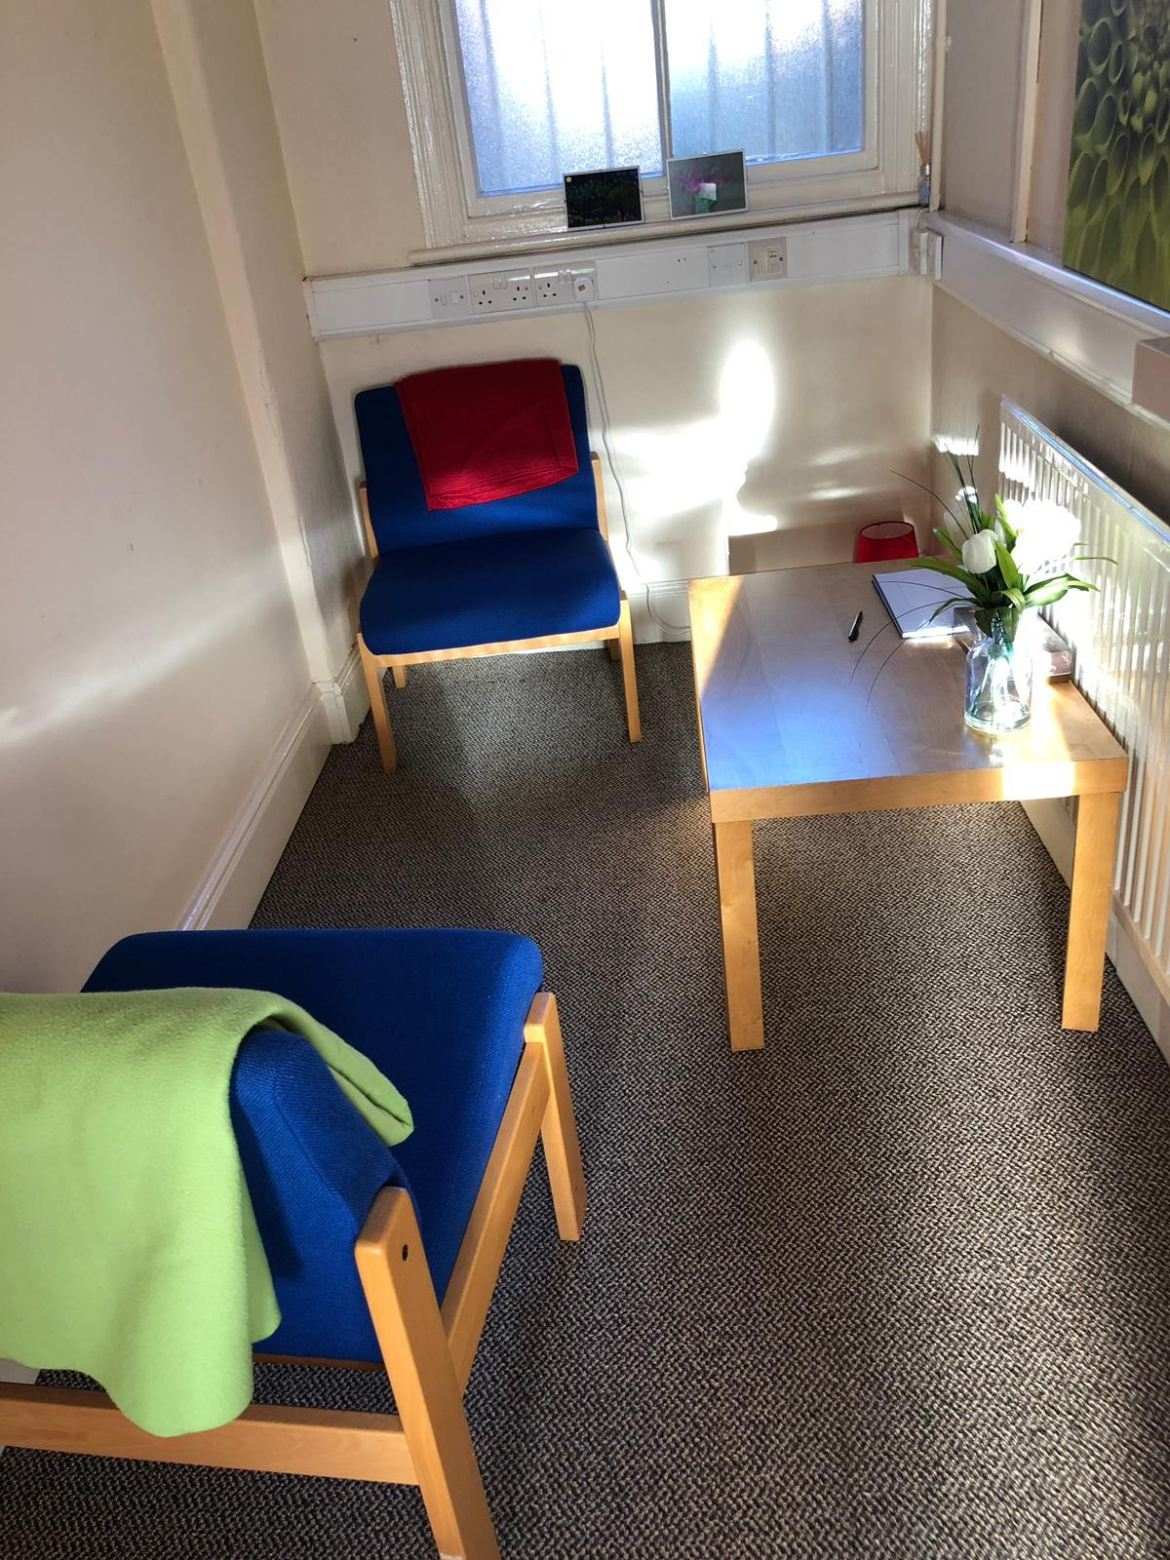 The TRC counselling room